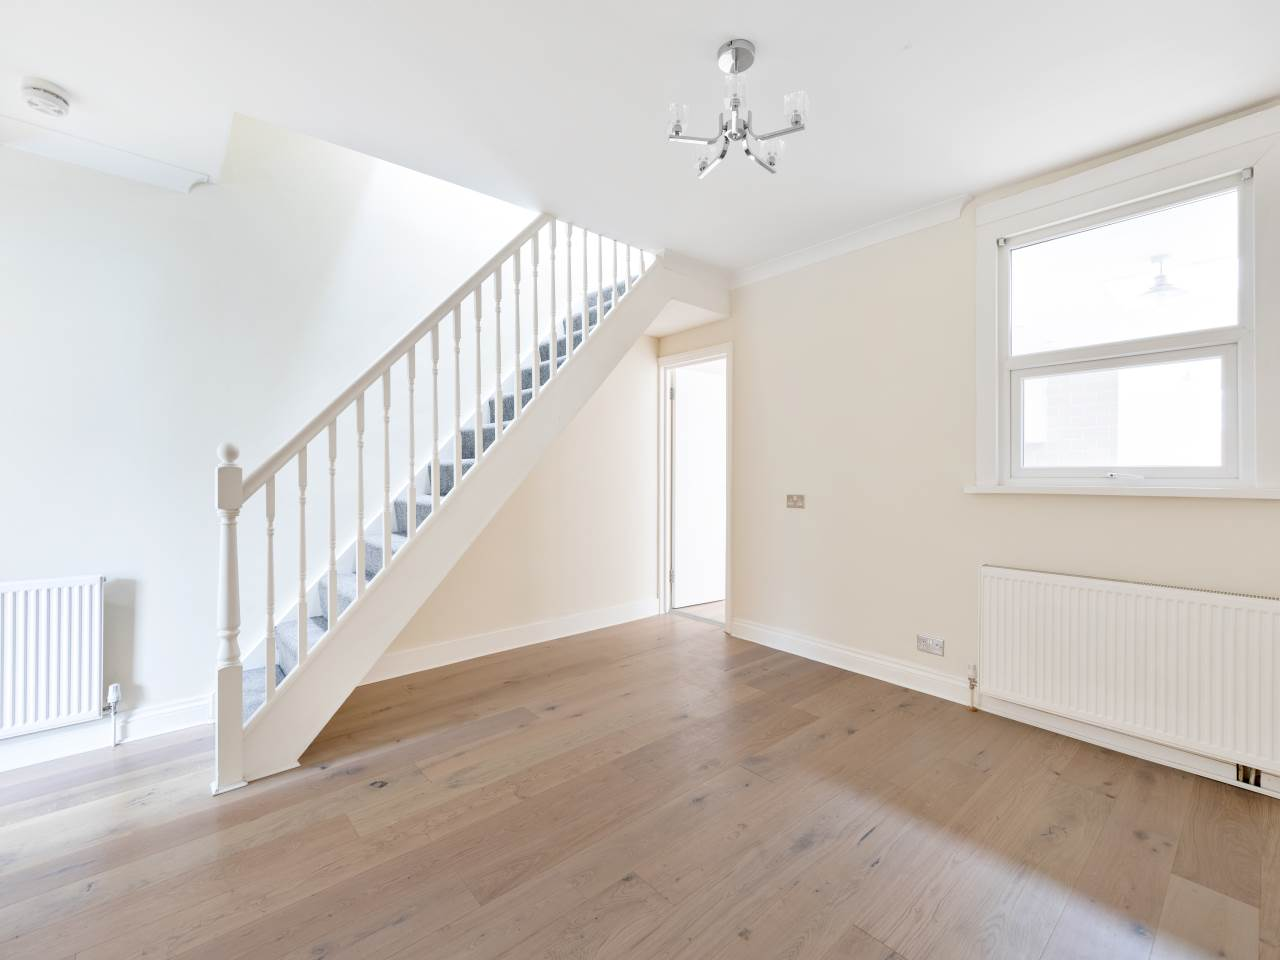 3 bed house for sale in Exning Road , Canning Town   - Property Image 6